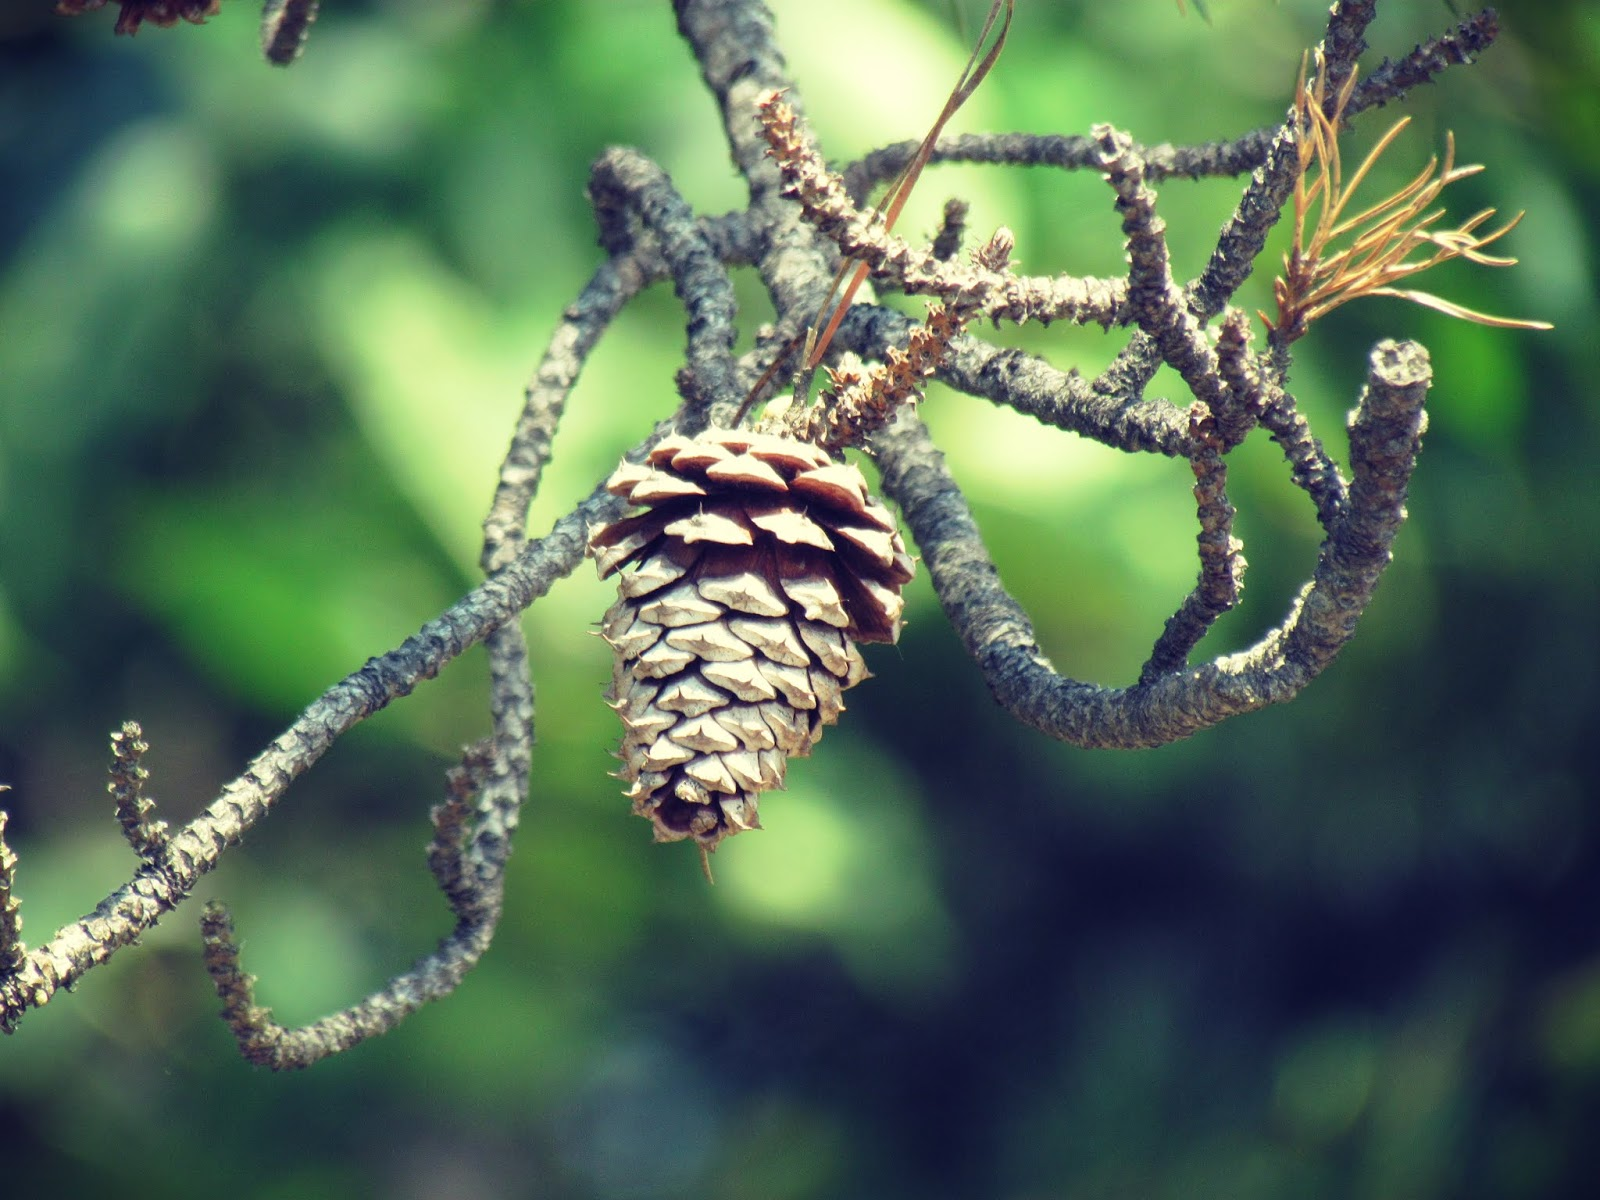 Pine cones dangling from a pine tree in a pine forest in the New England wilderness